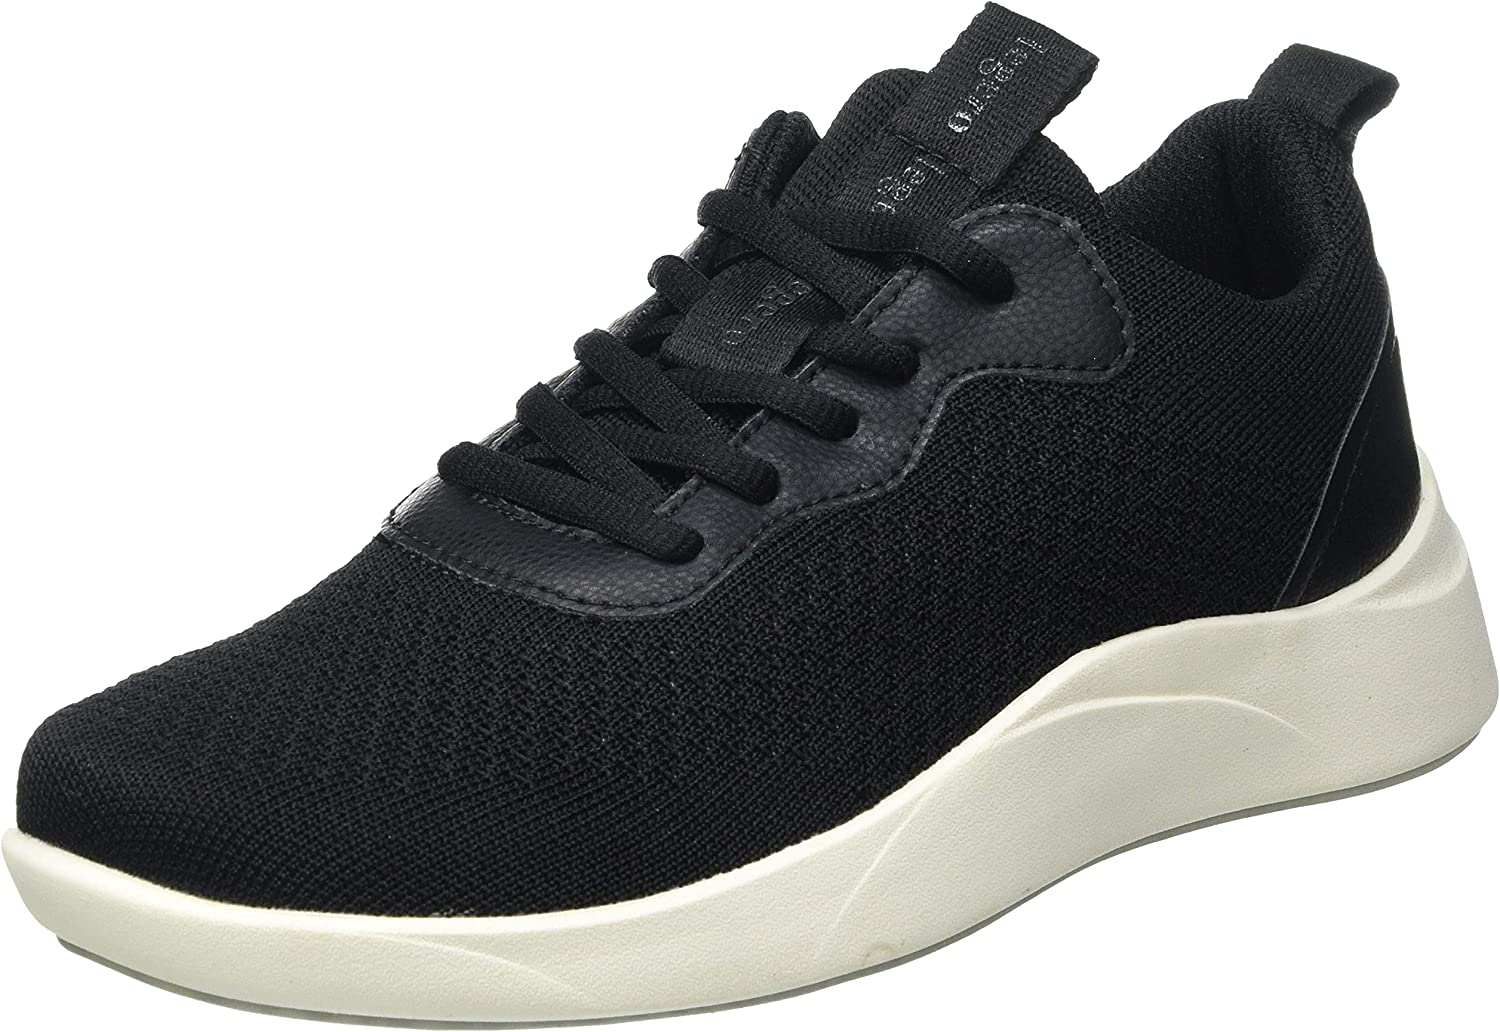 2021 autumn and winter new shipfree Legero Women's Low-top Sneakers